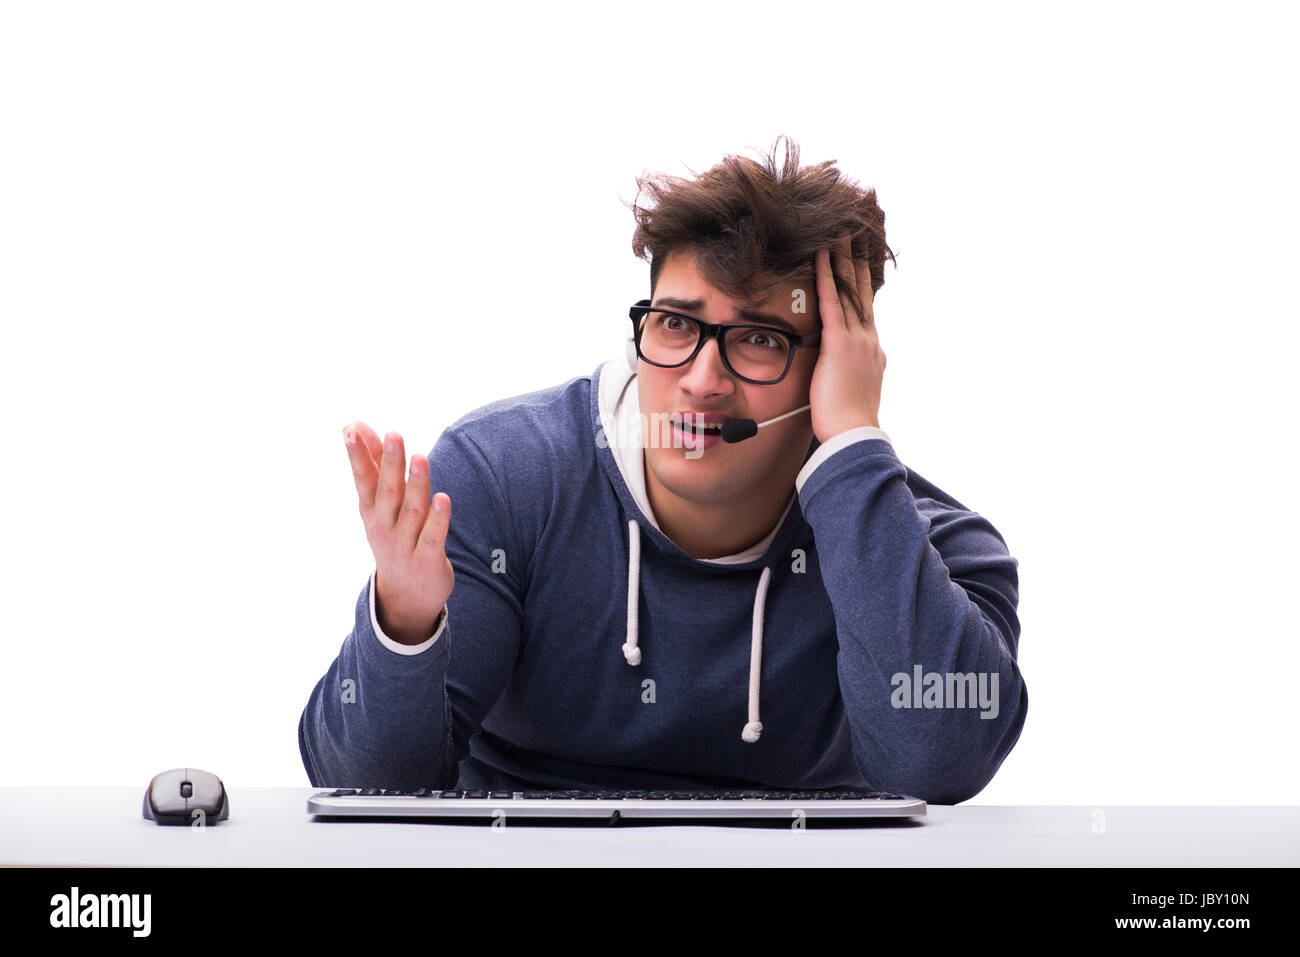 Funny nerd man working on computer isolated on white - Stock Image